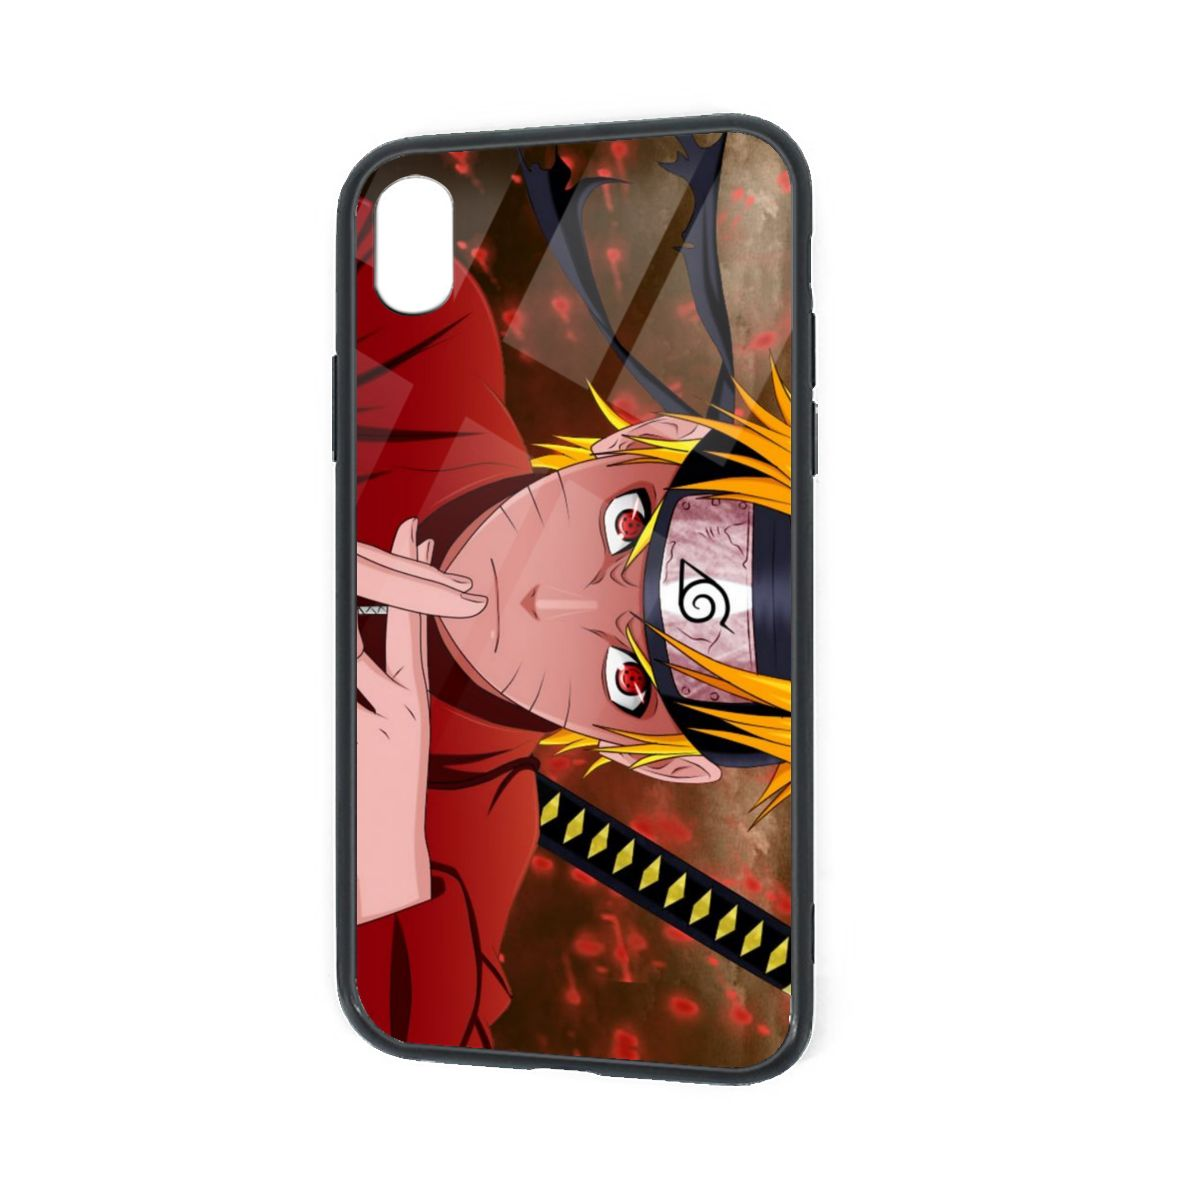 IPhone X XR XS 6 7 8 Plus Flexible Slim TPU Protector Cover Naruto Sage Mode